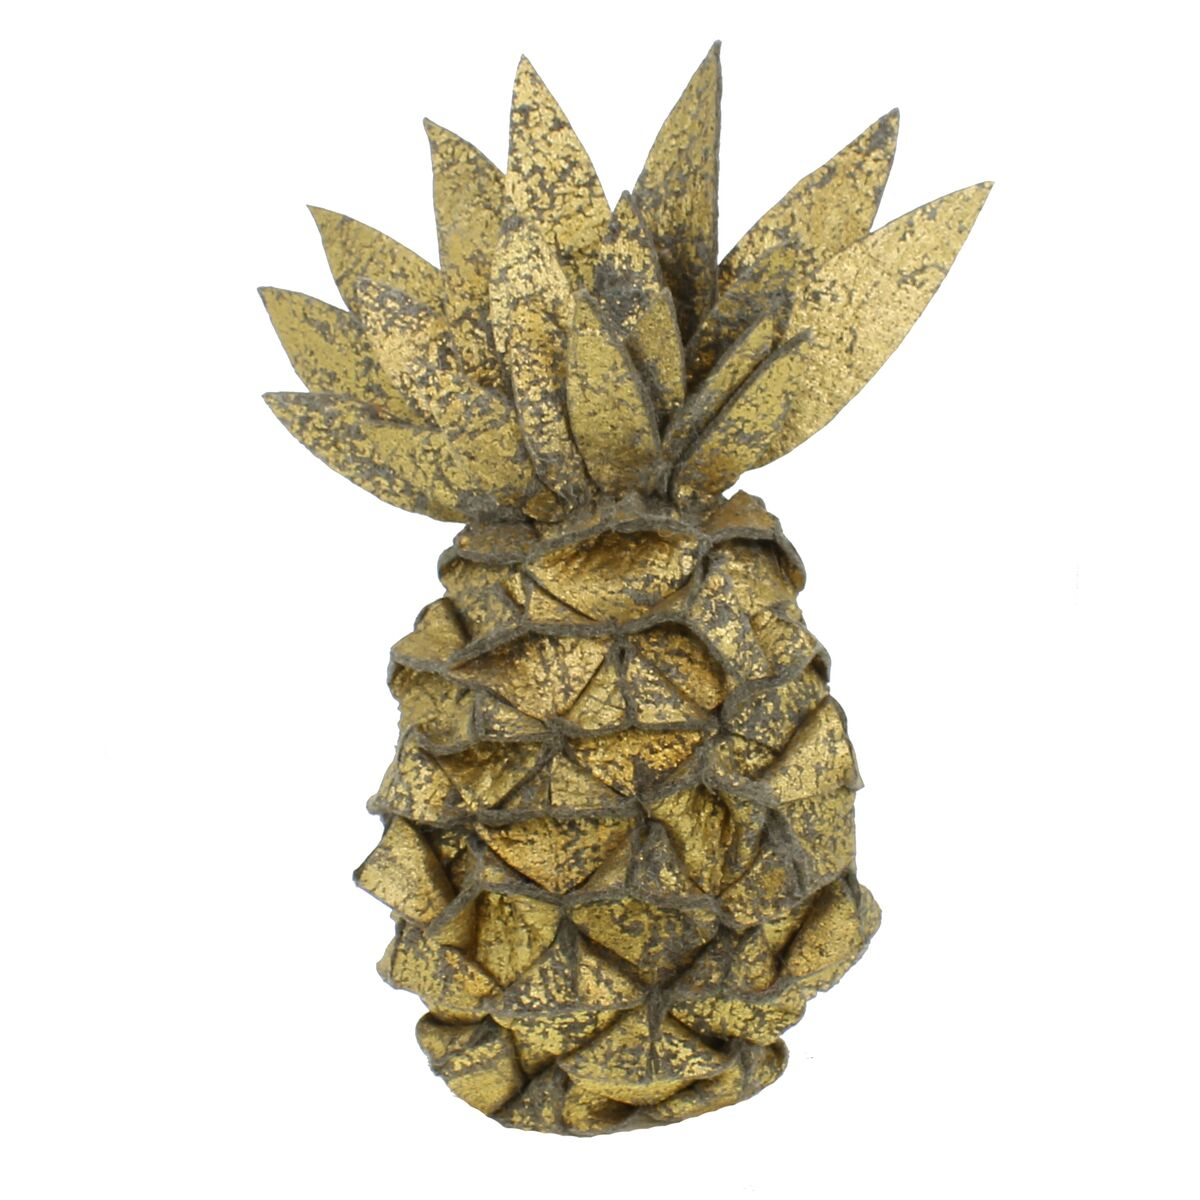 Popular Fiona Walker Felt Pineapple Wall Decor Gold – Leo & Bella Pertaining To Pineapple Wall Decor (View 17 of 20)